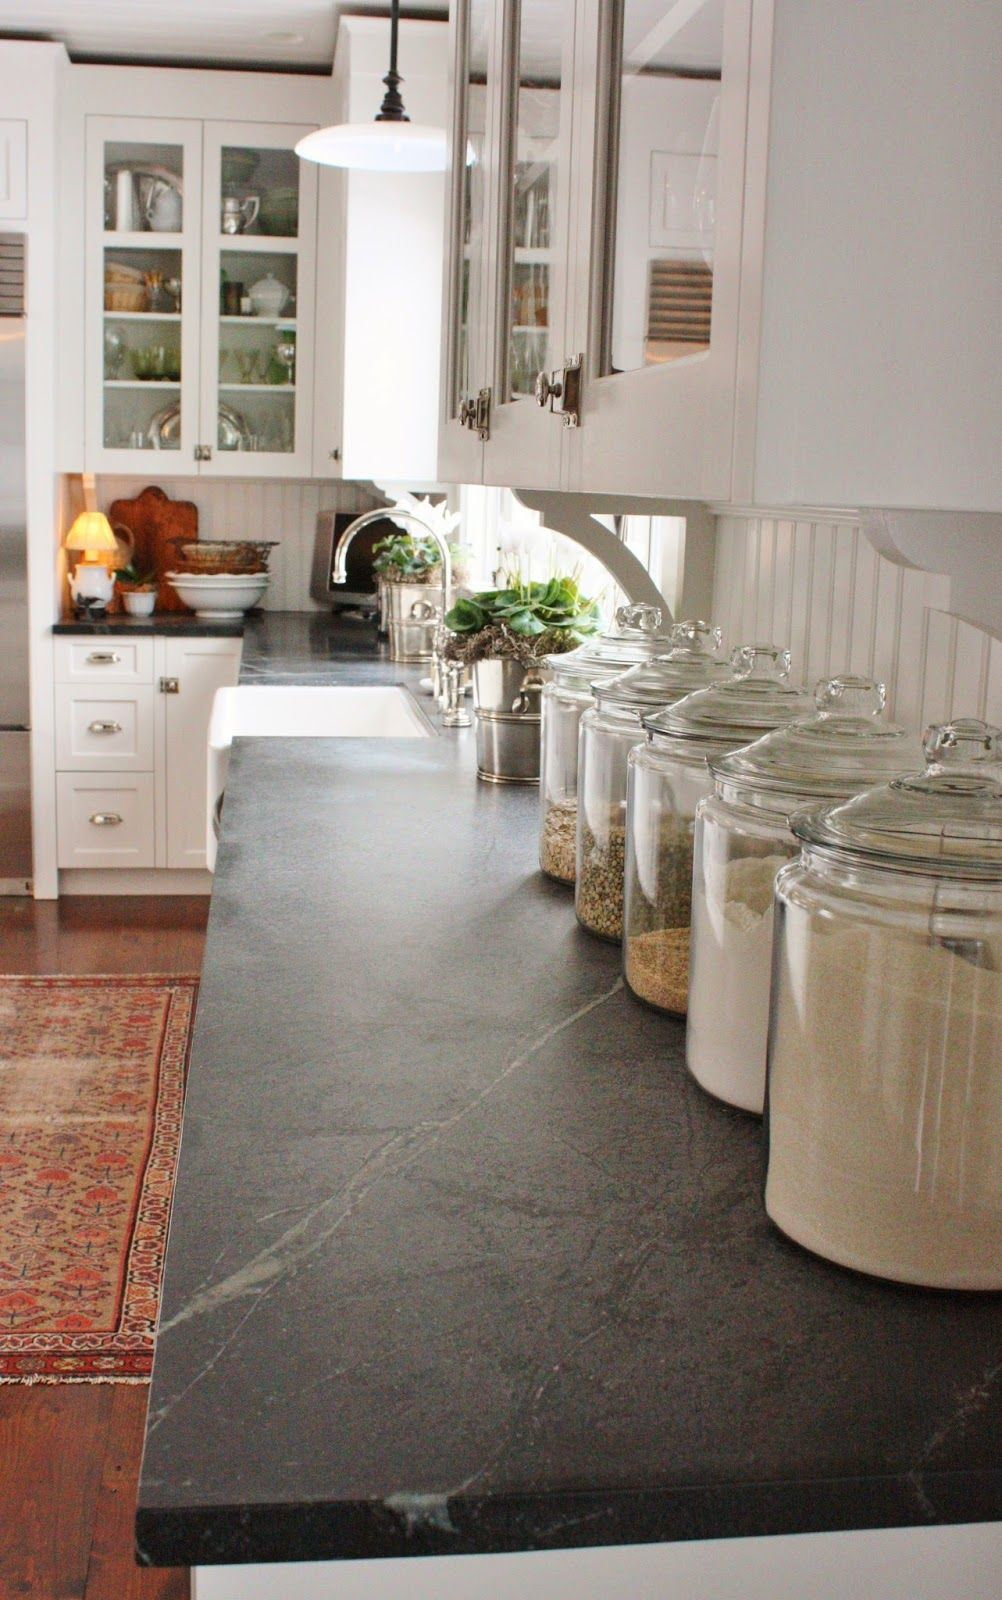 How To Take Care Of Soapstone Countertops For The Love Of A House